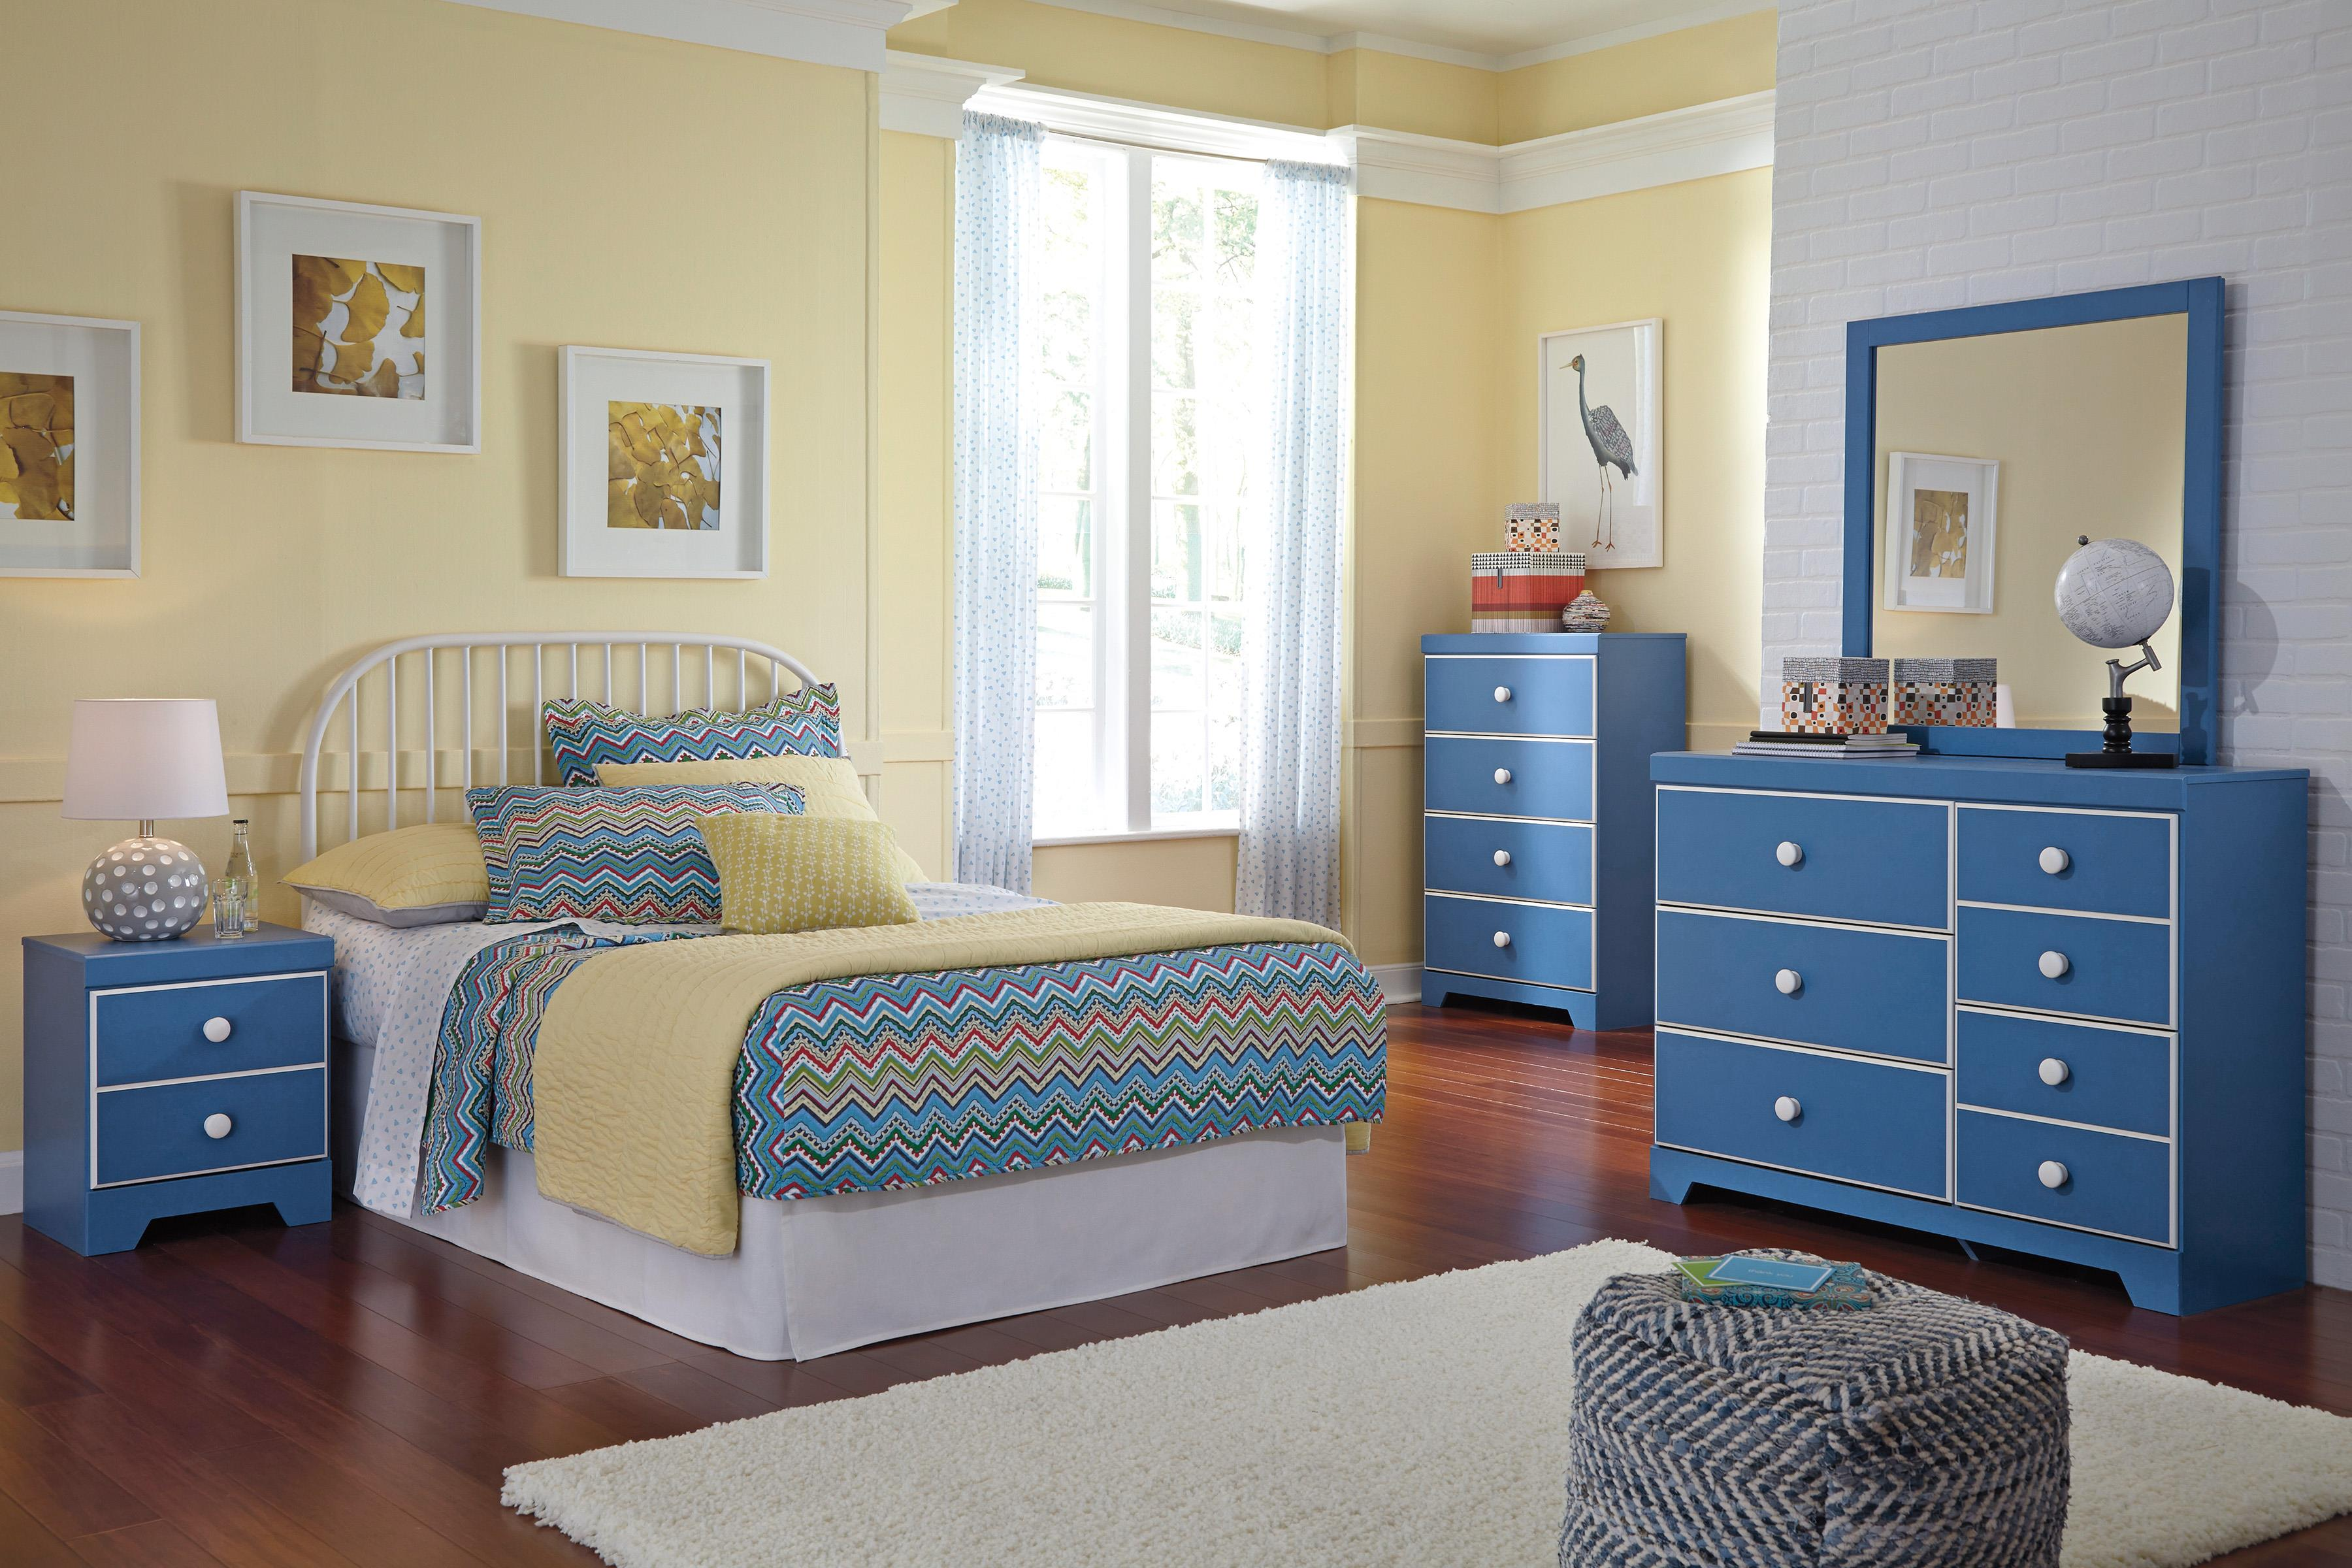 Signature Design by Ashley Bronilly Full Bedroom Group - Item Number: B045 F Bedroom Group 4